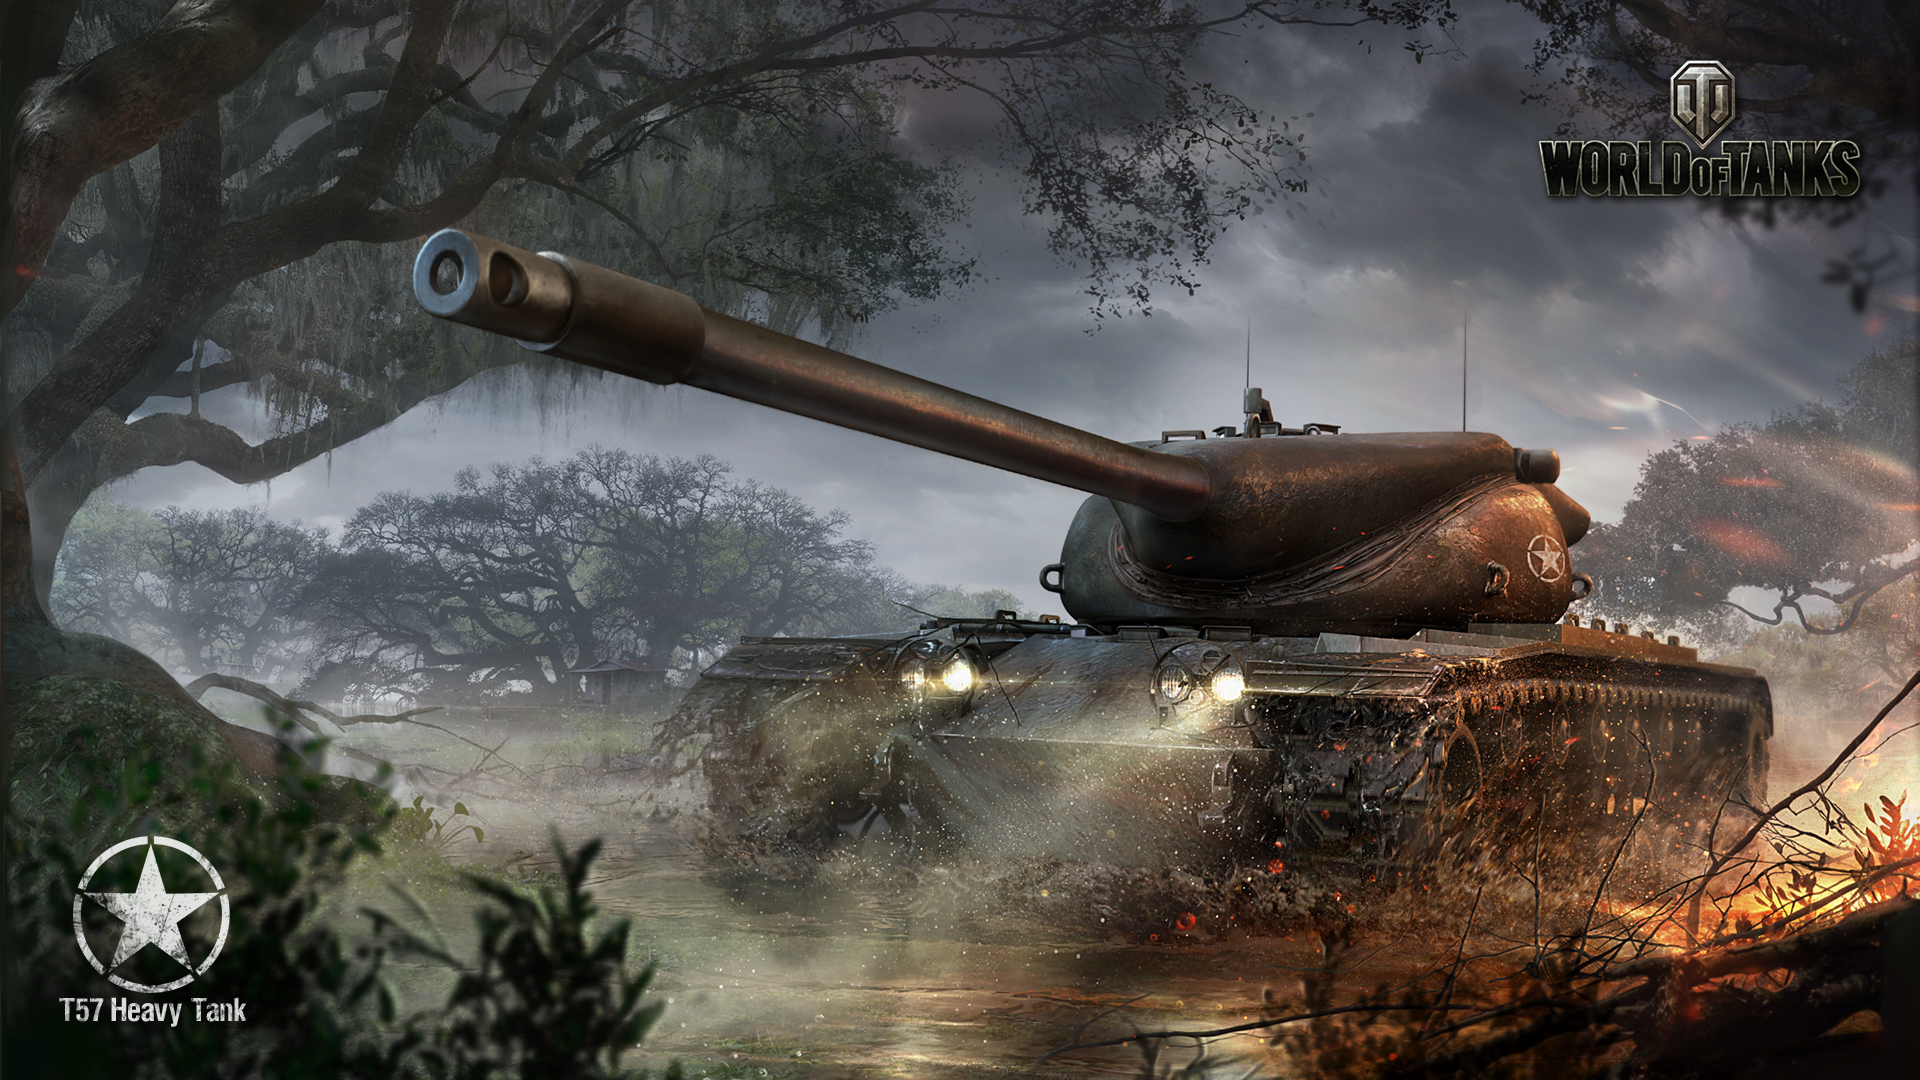 T57 heavy1920_1080.jpg - World of Tanks